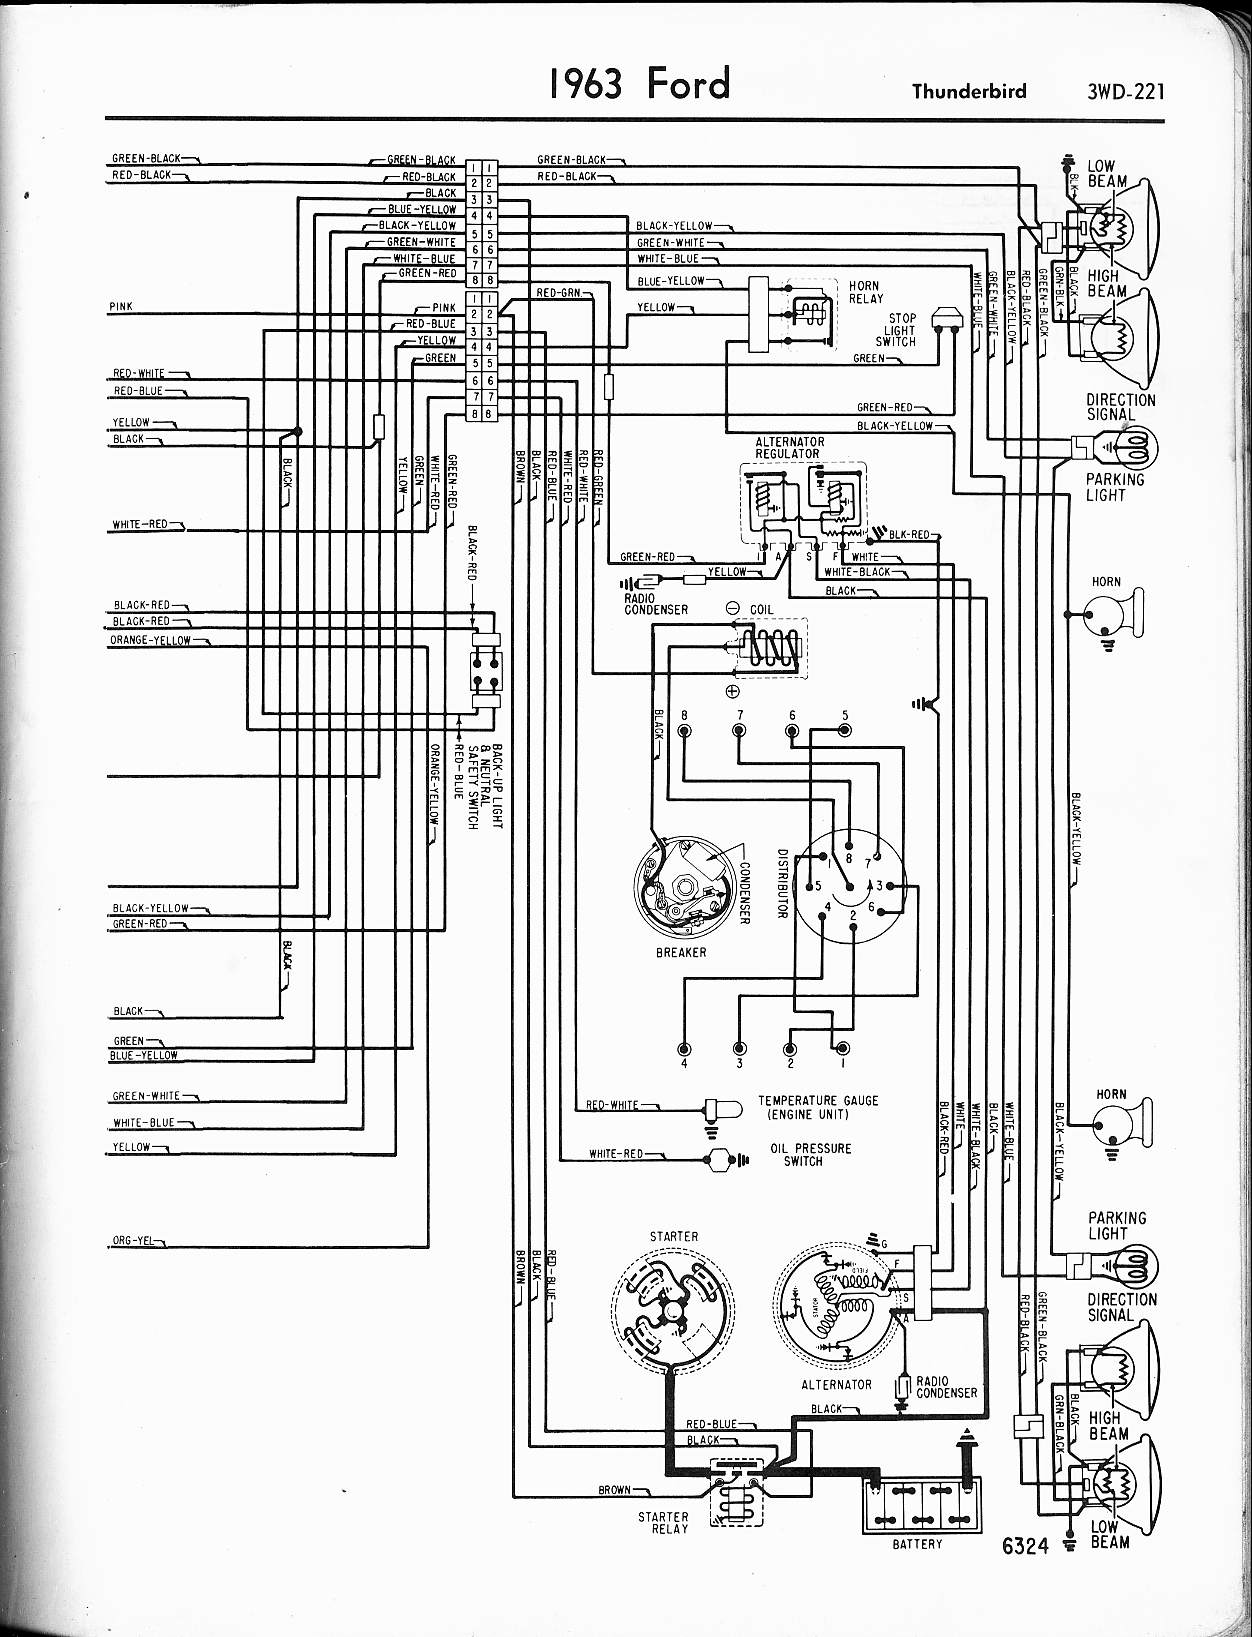 66 Ford Fairlane Wiring Diagrams Regulator Library F250 Schematic 1956 Thunderbird Just Data Rh Ag Skiphire Co Uk